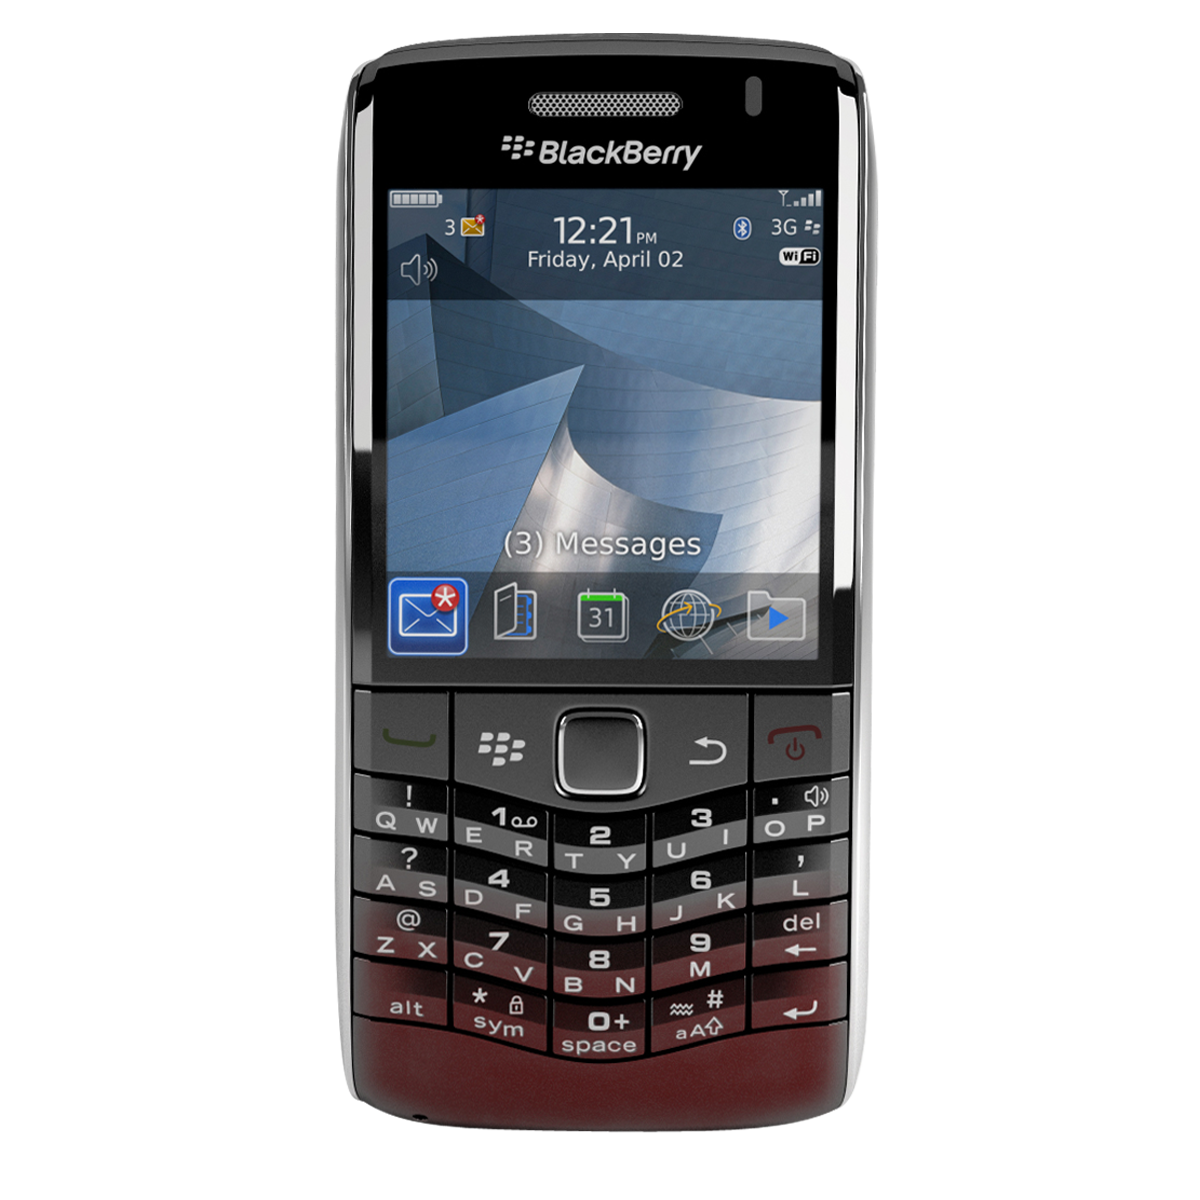 BlackBerry 9100